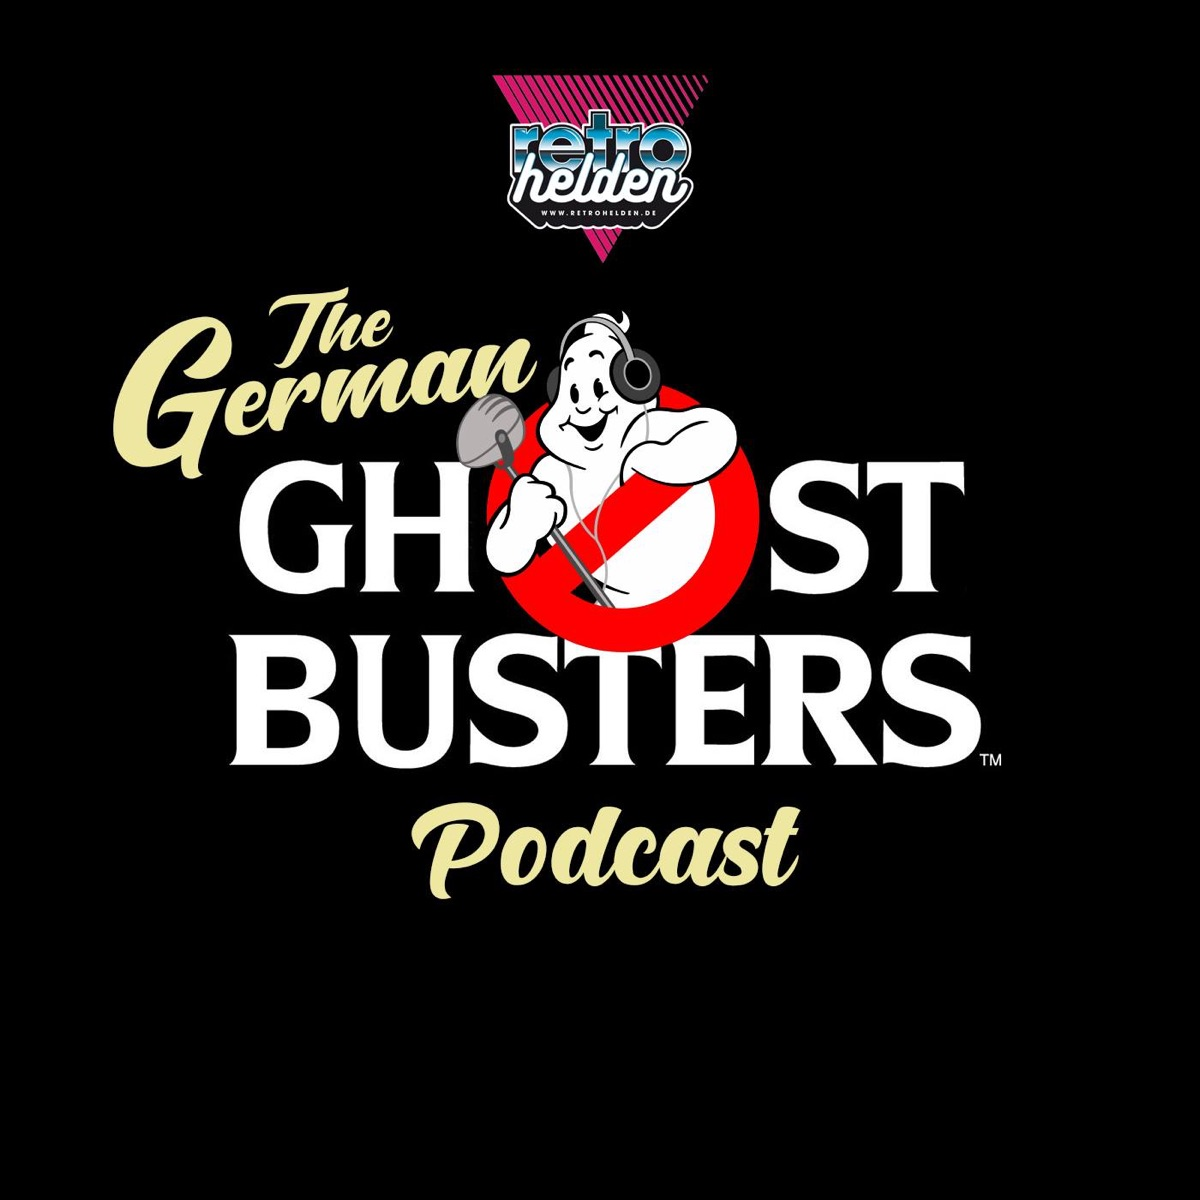 German Ghostbusters Podcast